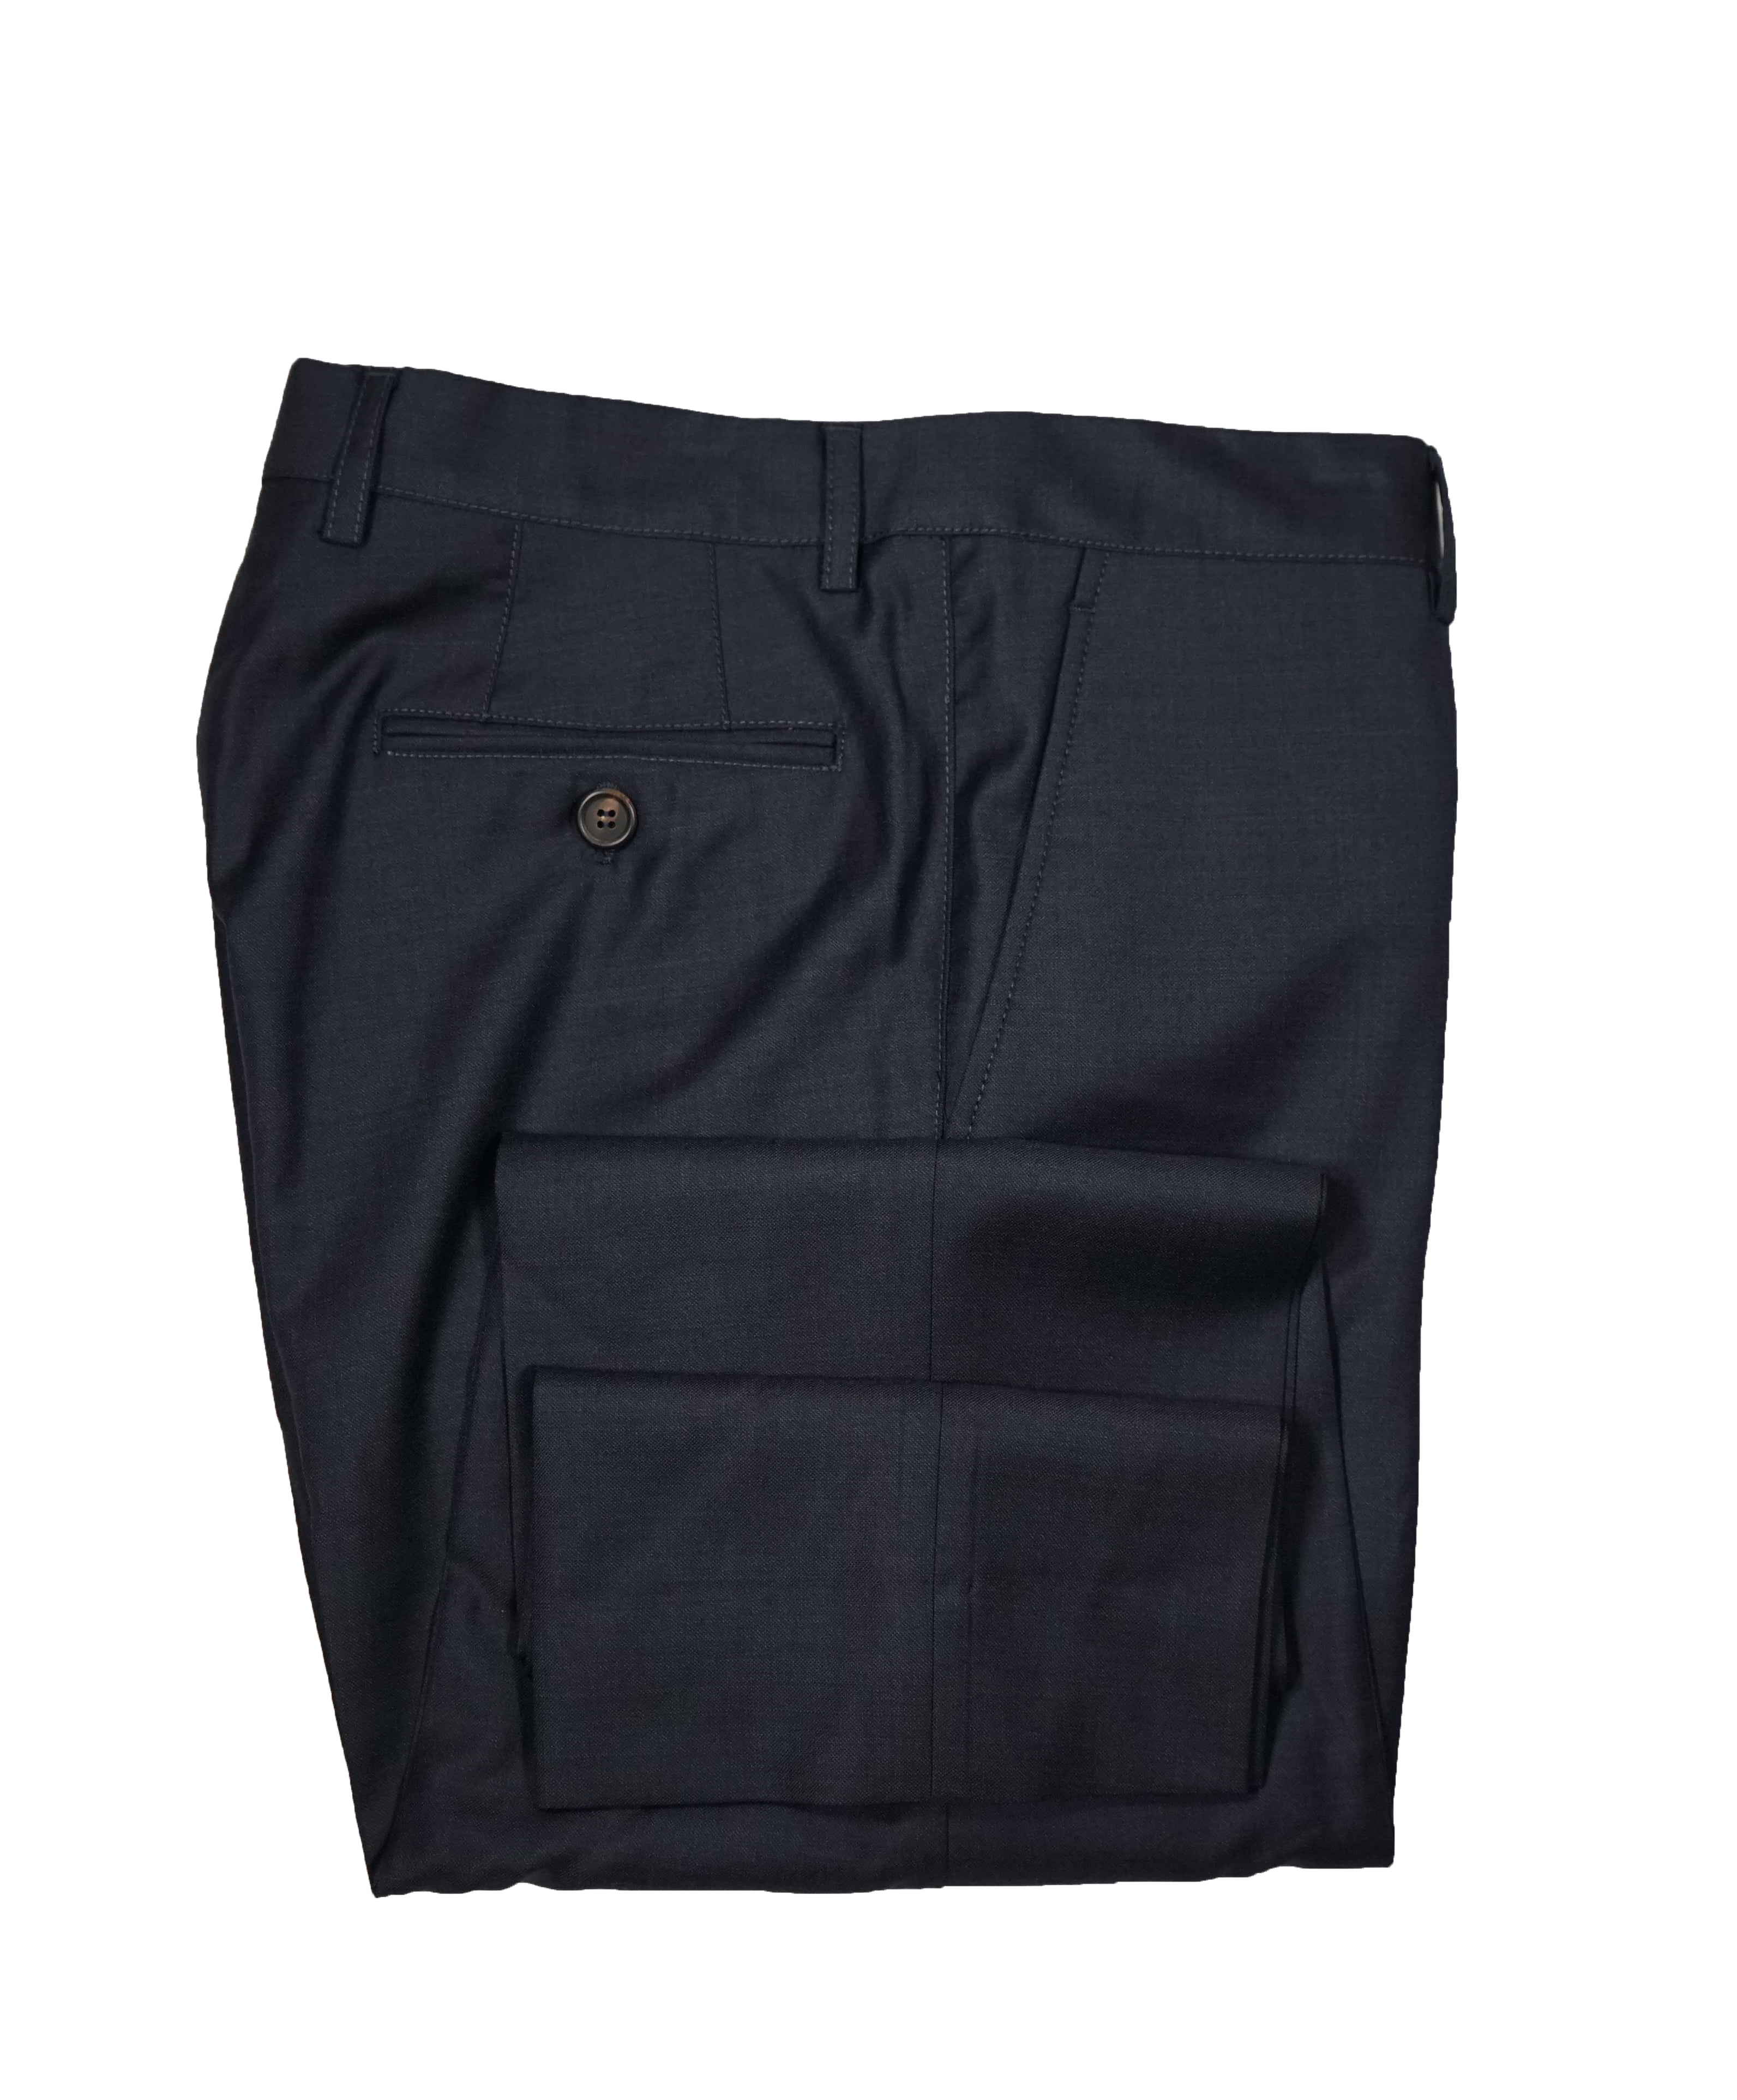 BRUNELLO CUCINELLI - Blue Flat Front Pants With Pick Stitching Detail - 34W